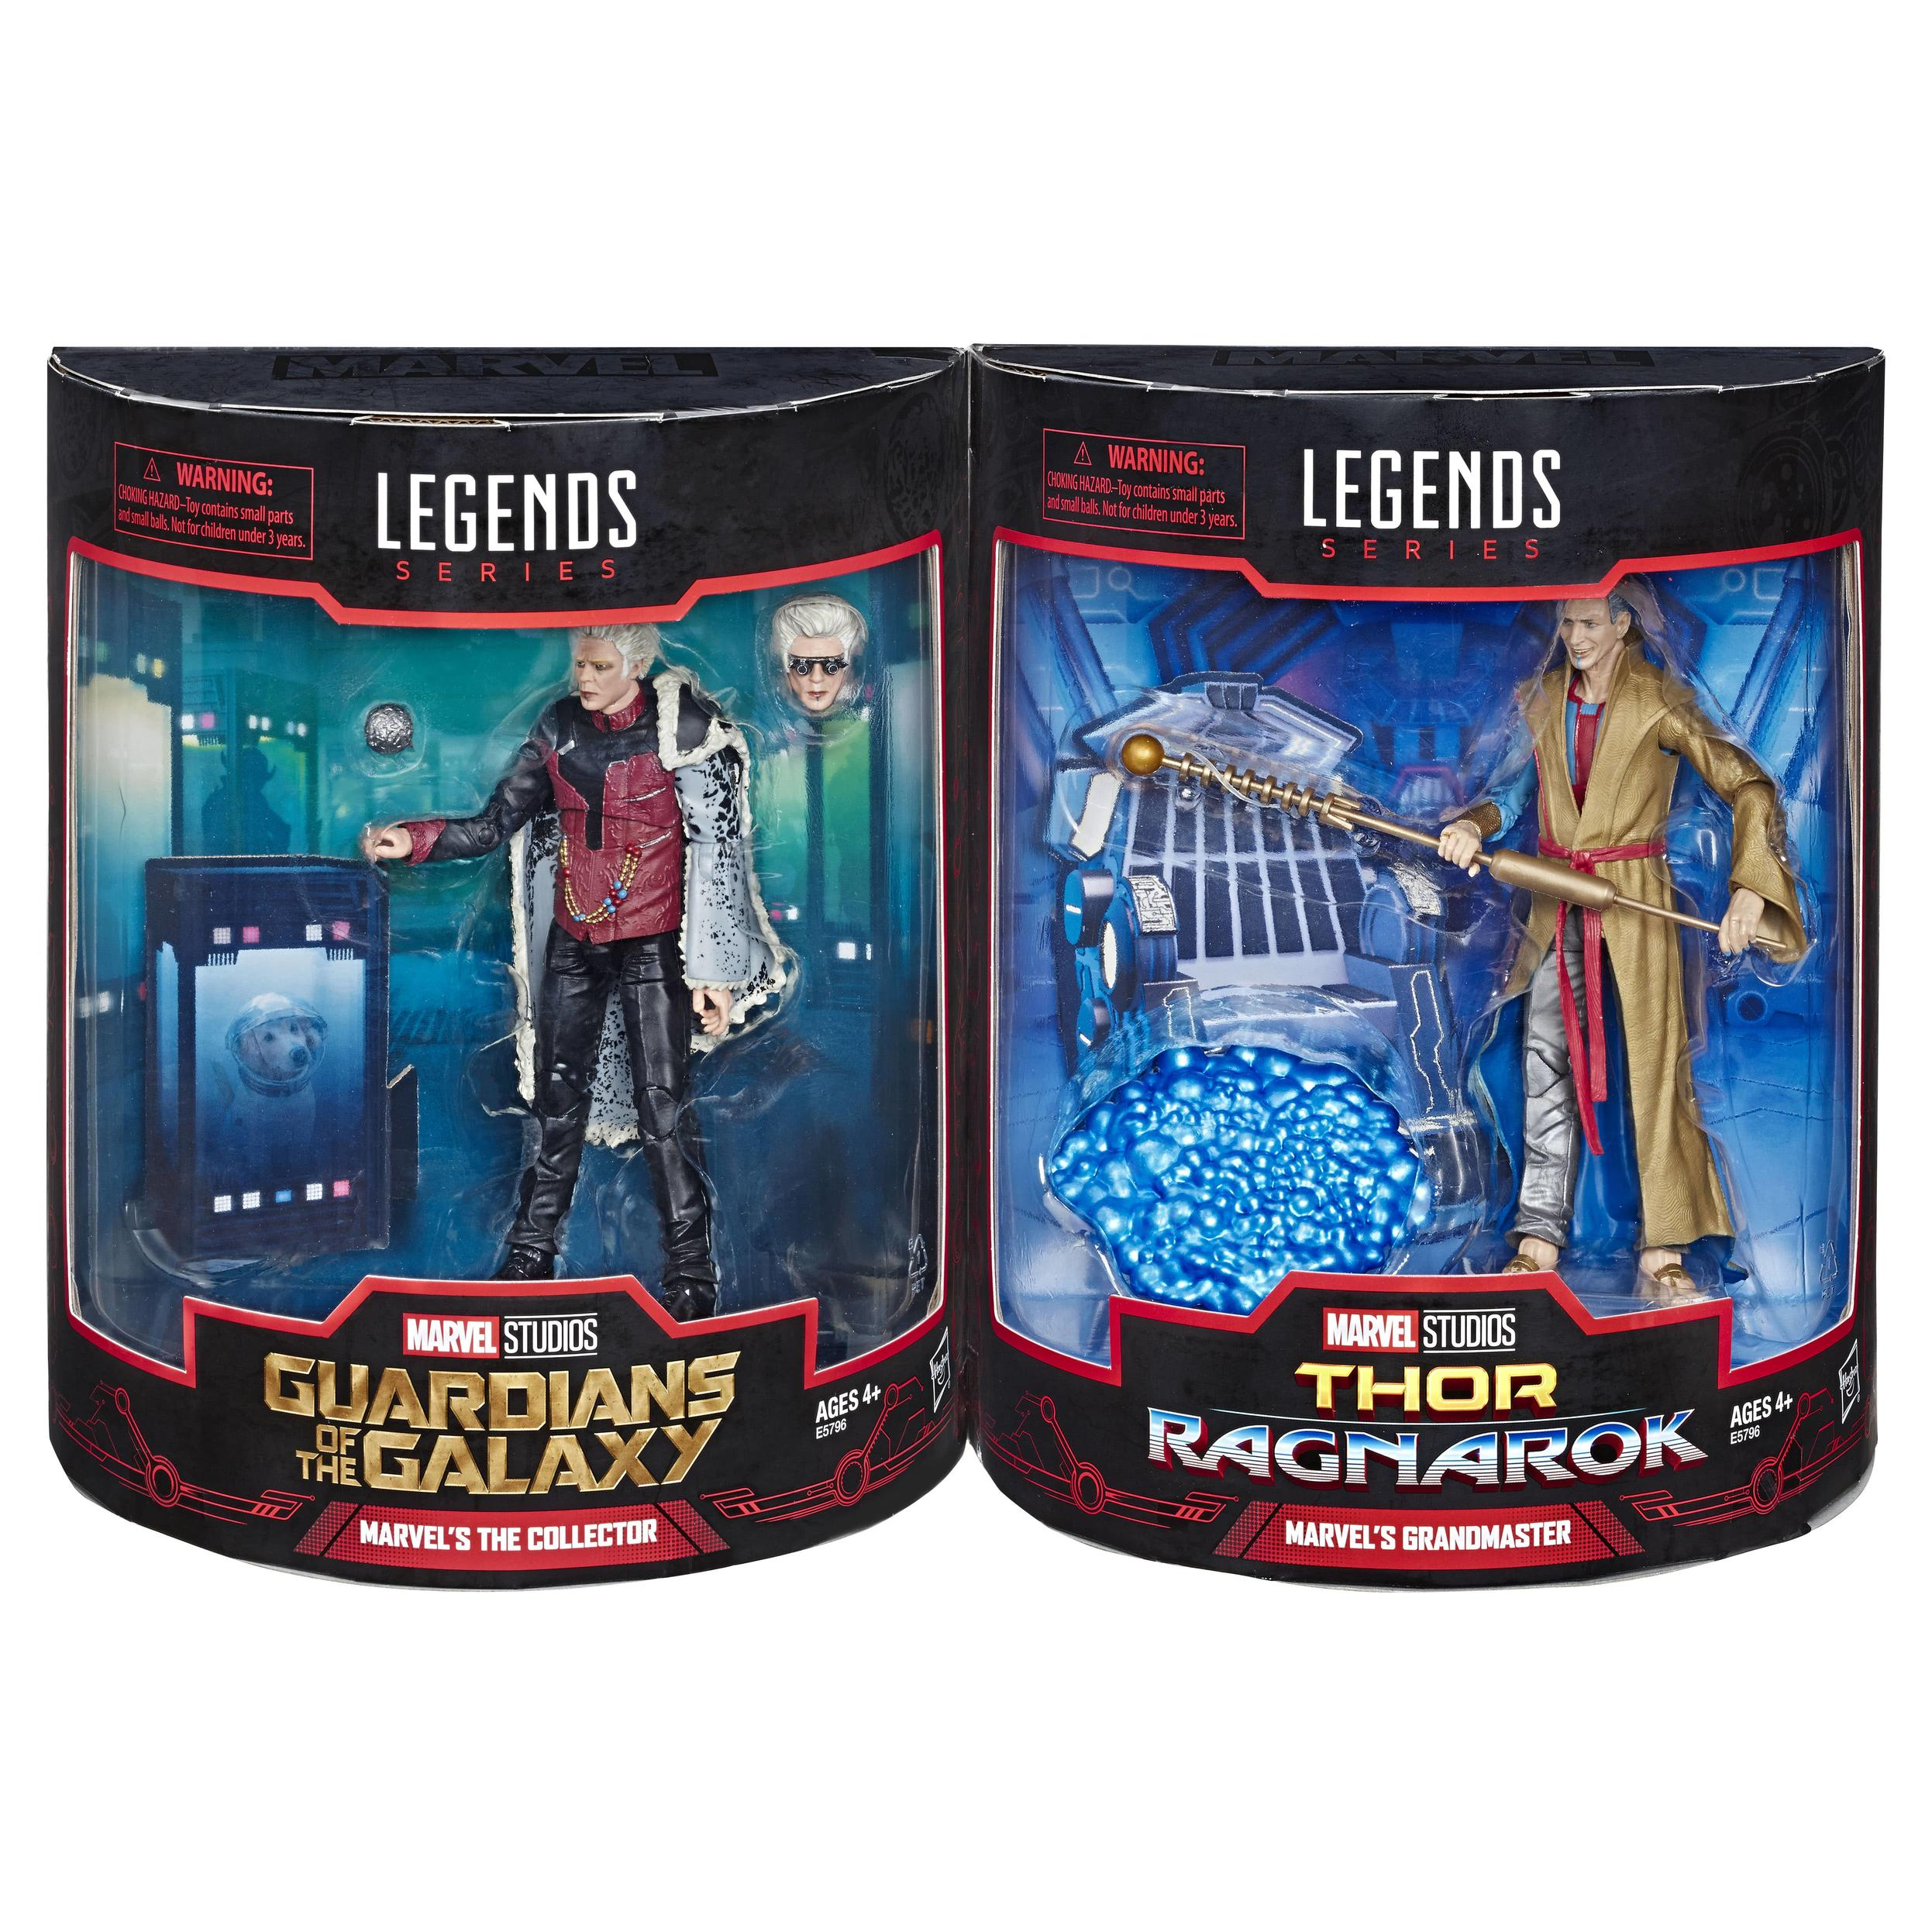 Hasbro Marvel Legends Collector and Grandmaster